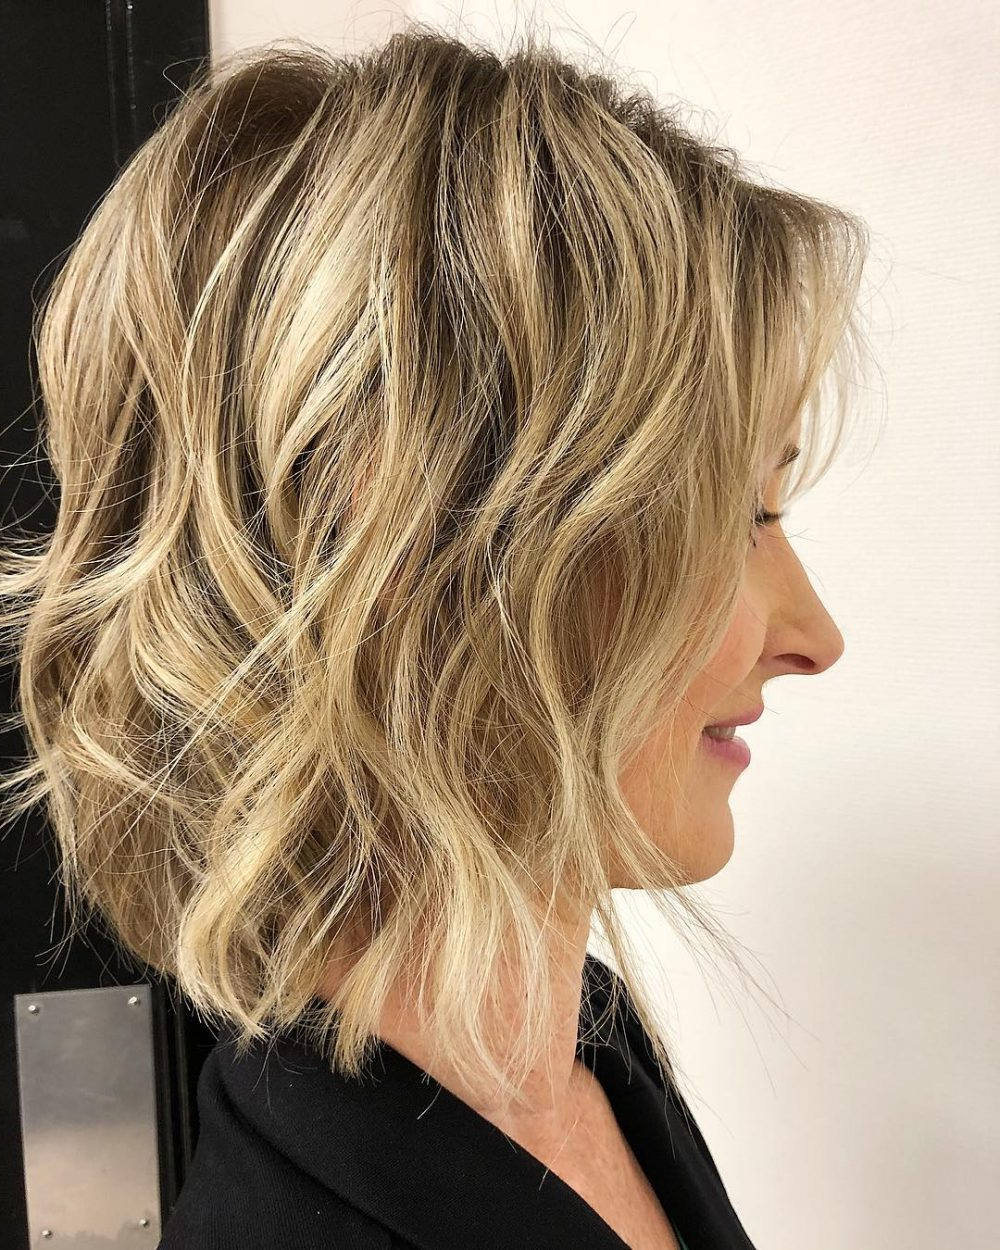 43 Perfect Short Hairstyles For Fine Hair In 2018 Inside Layered Bob Hairstyles For Fine Hair (View 6 of 20)